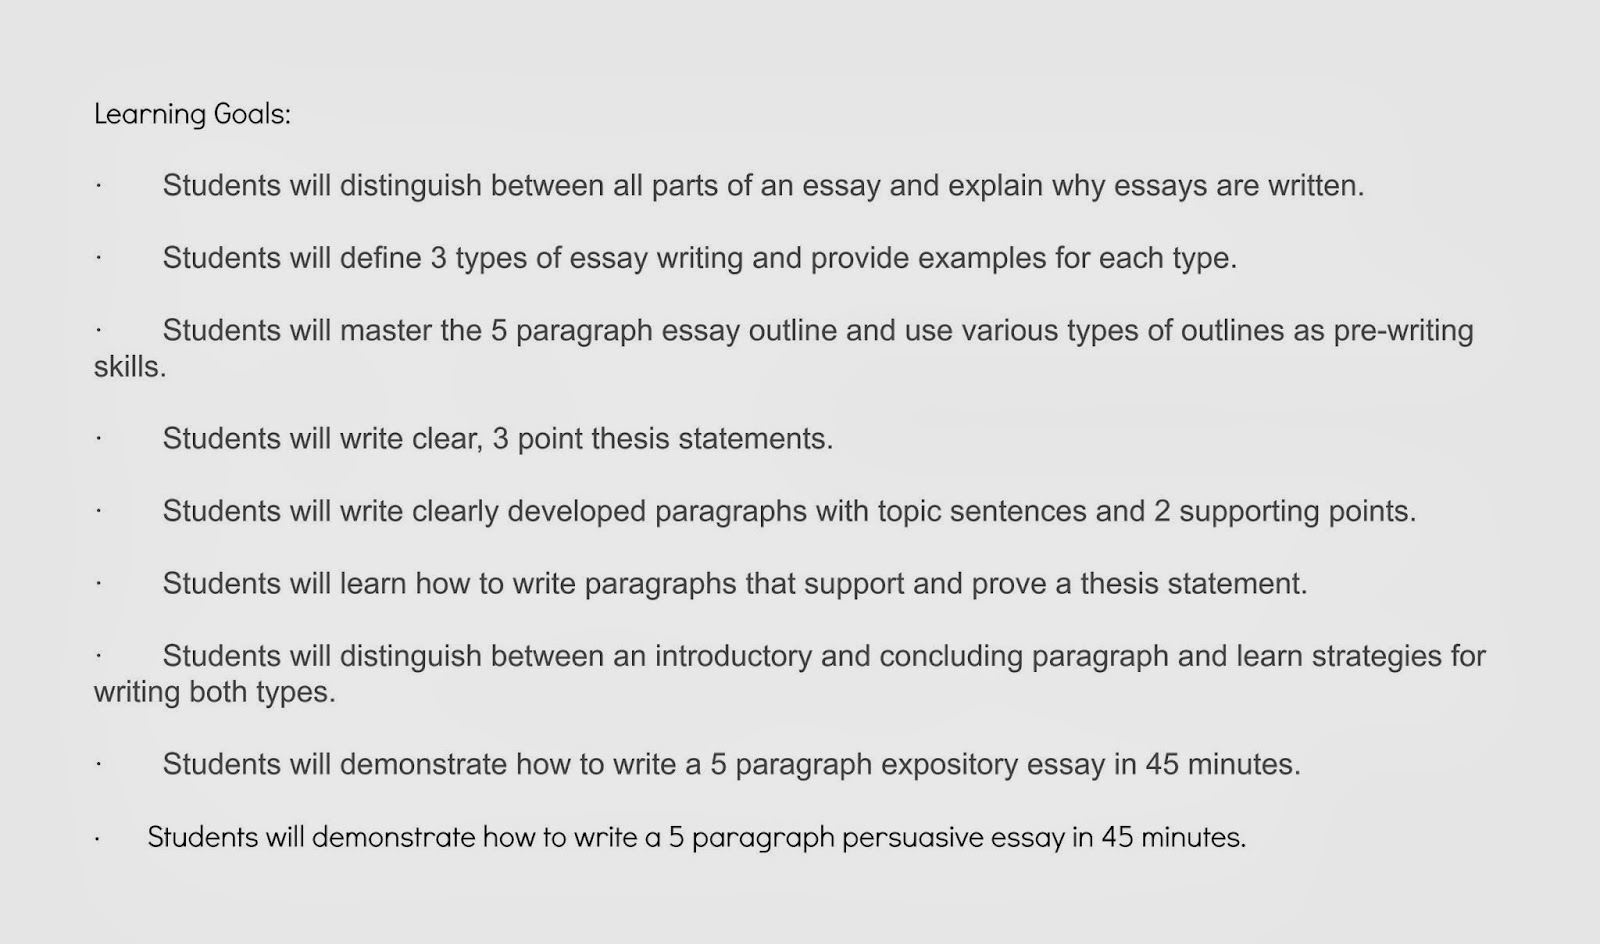 different kinds of essay easy essays com easy essays com easy  easy essays com easy essays com easy essay oglasi easy essay adventures jude bridgeway academy easy